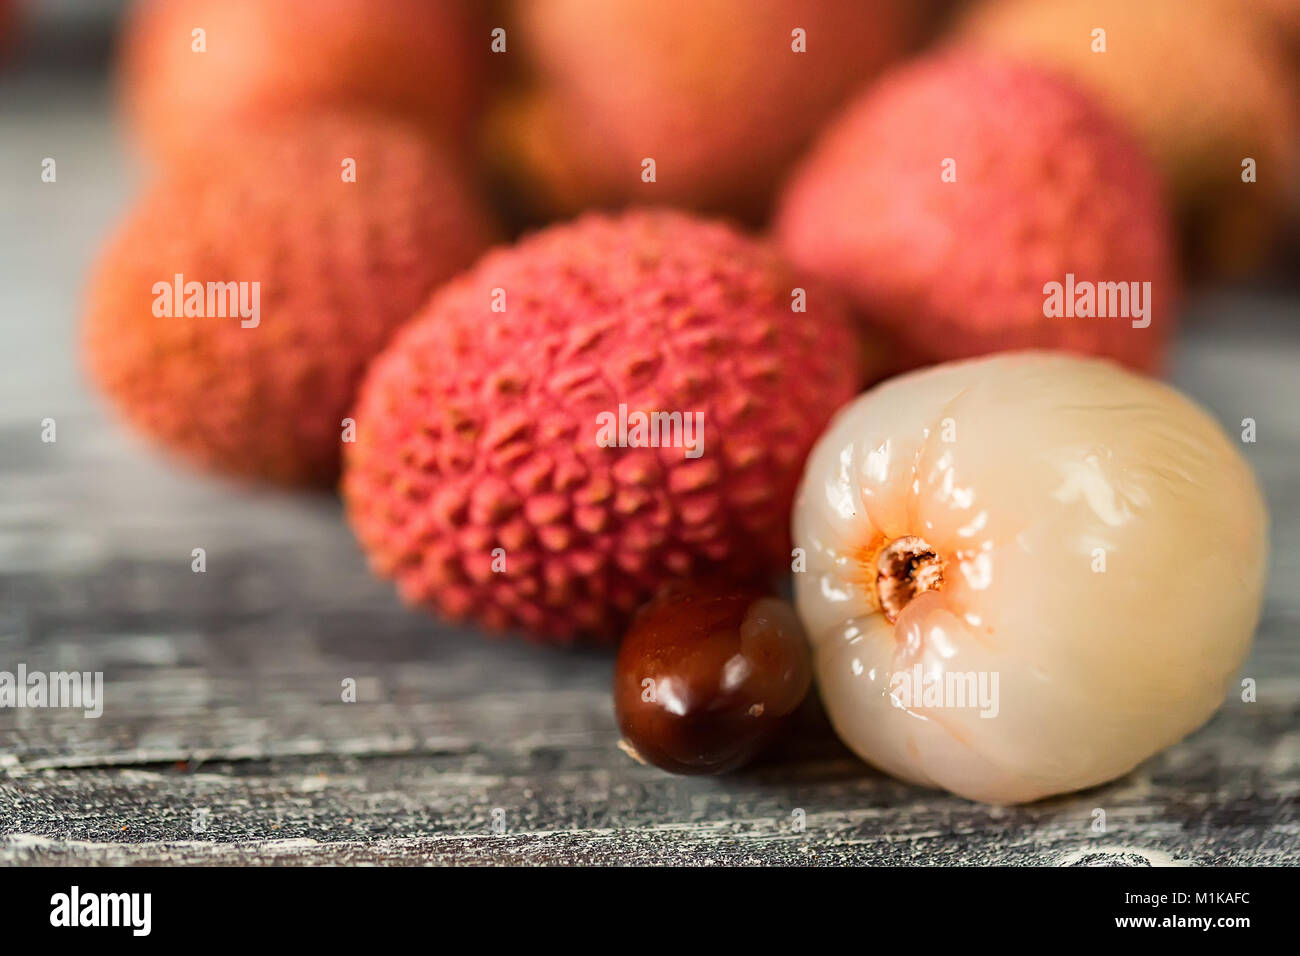 Lychee fruits and seed on wooden background - Stock Image